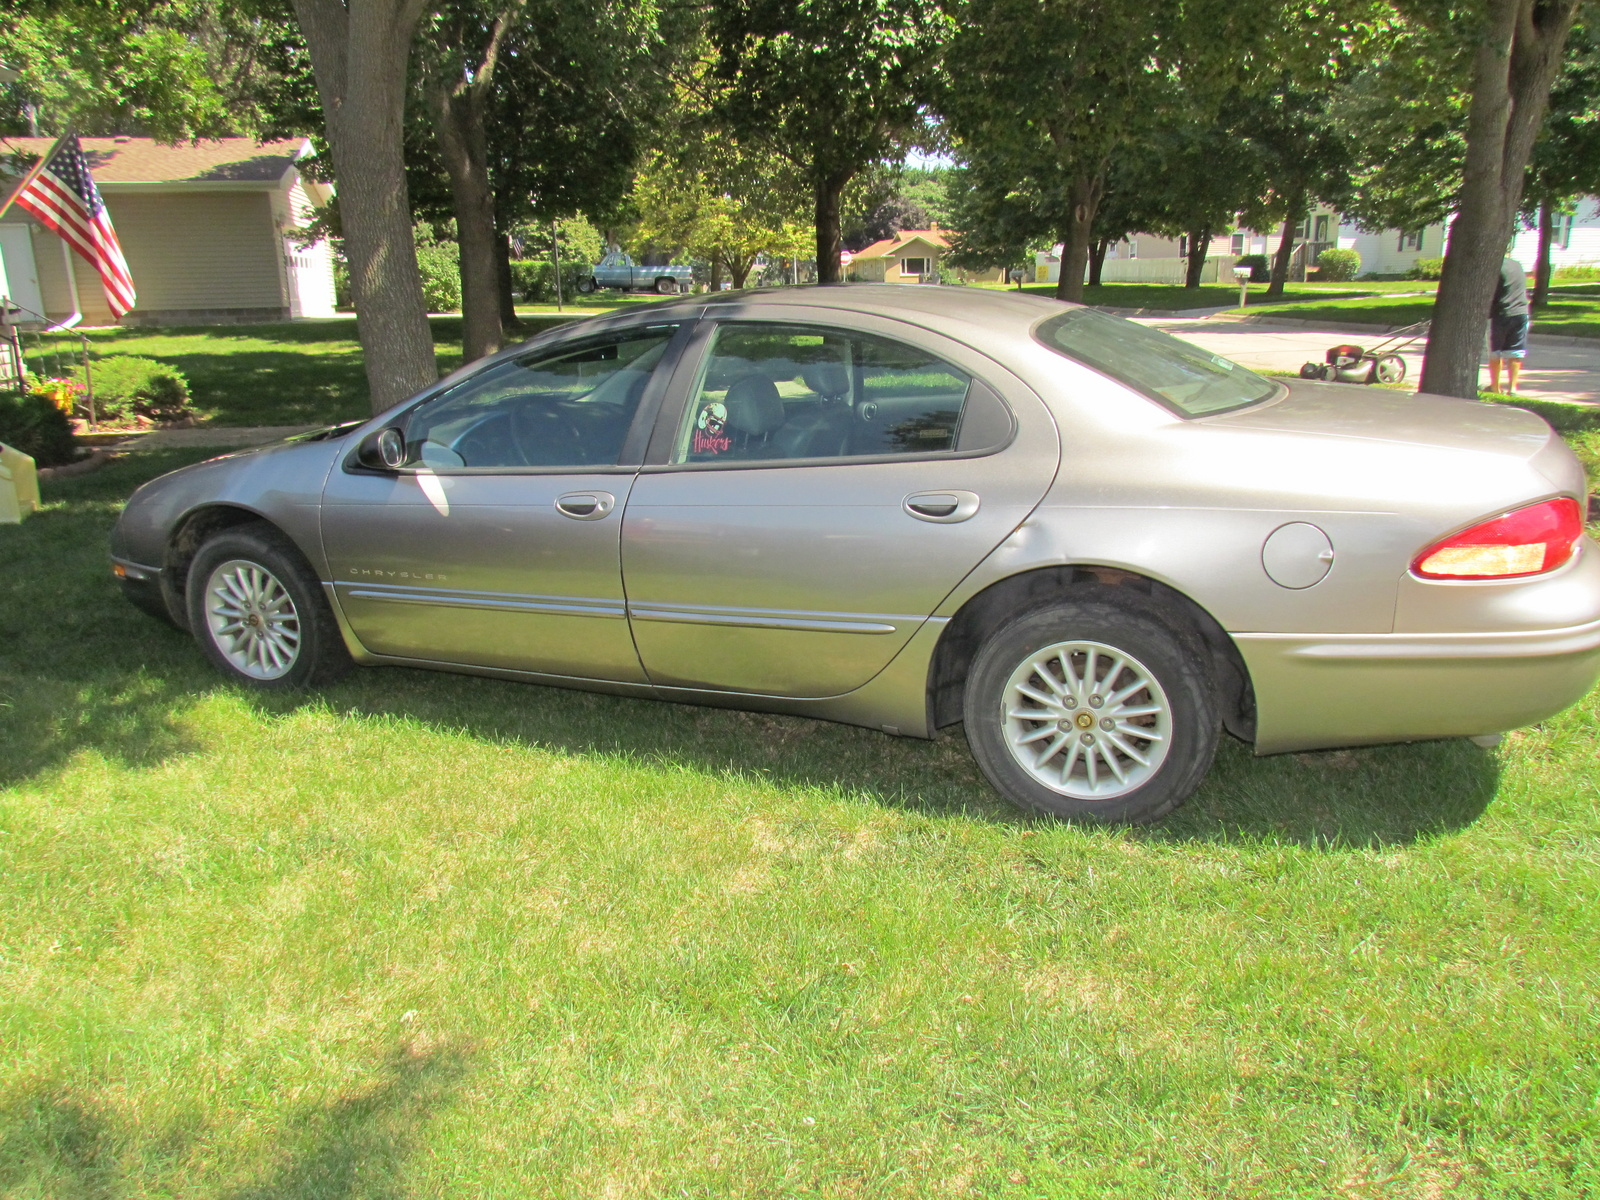 1999 chrysler concorde 4 dr lxi sedan picture exterior. Cars Review. Best American Auto & Cars Review